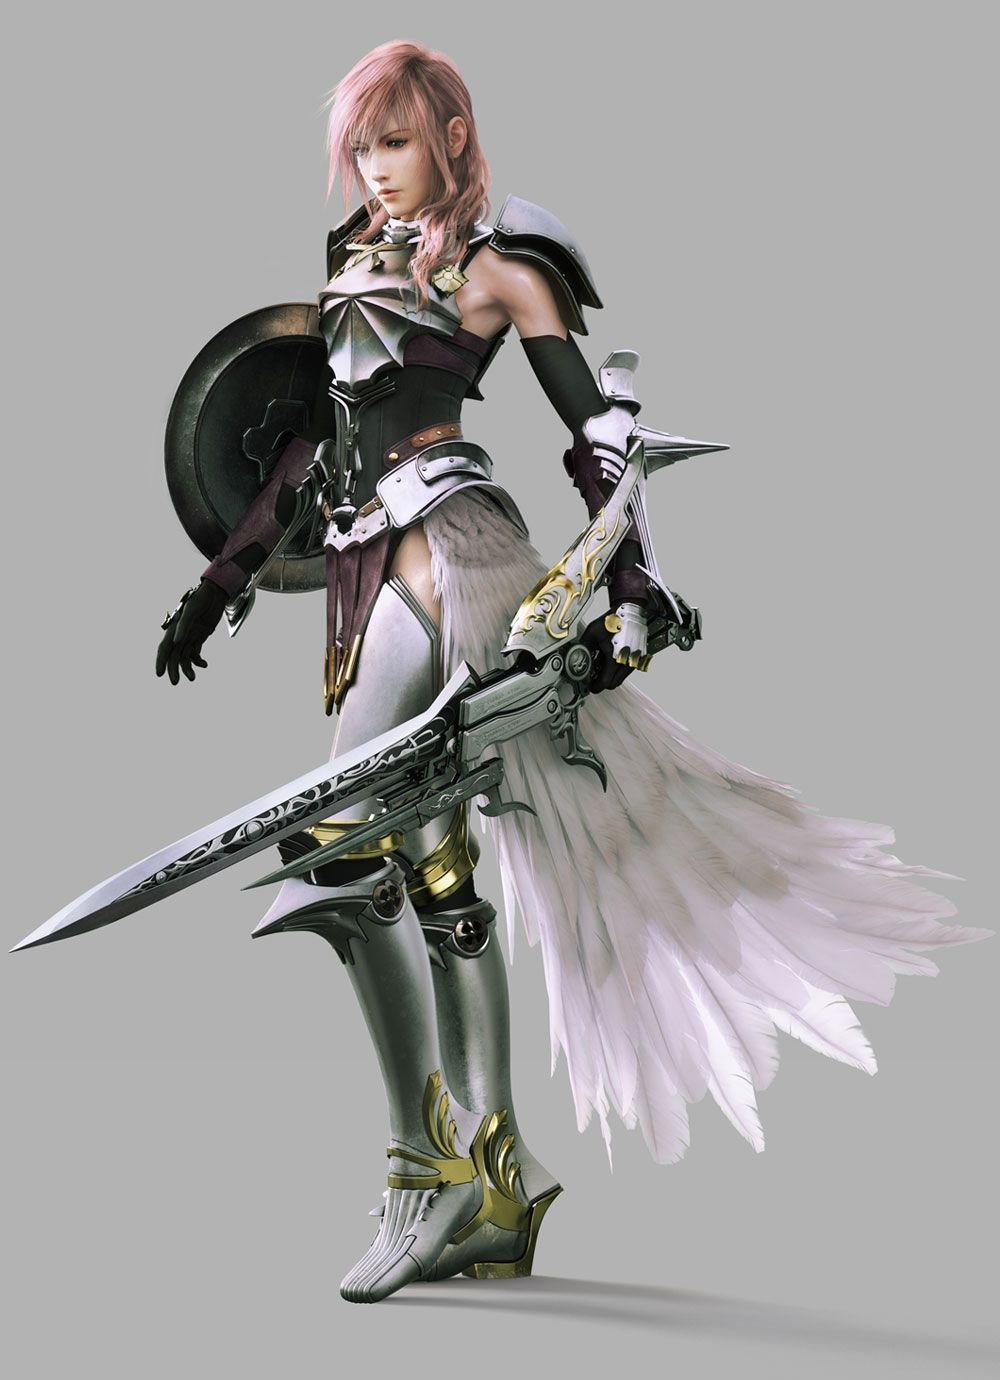 Lightning Xiii 2 Reallly Want To Make This Outfit